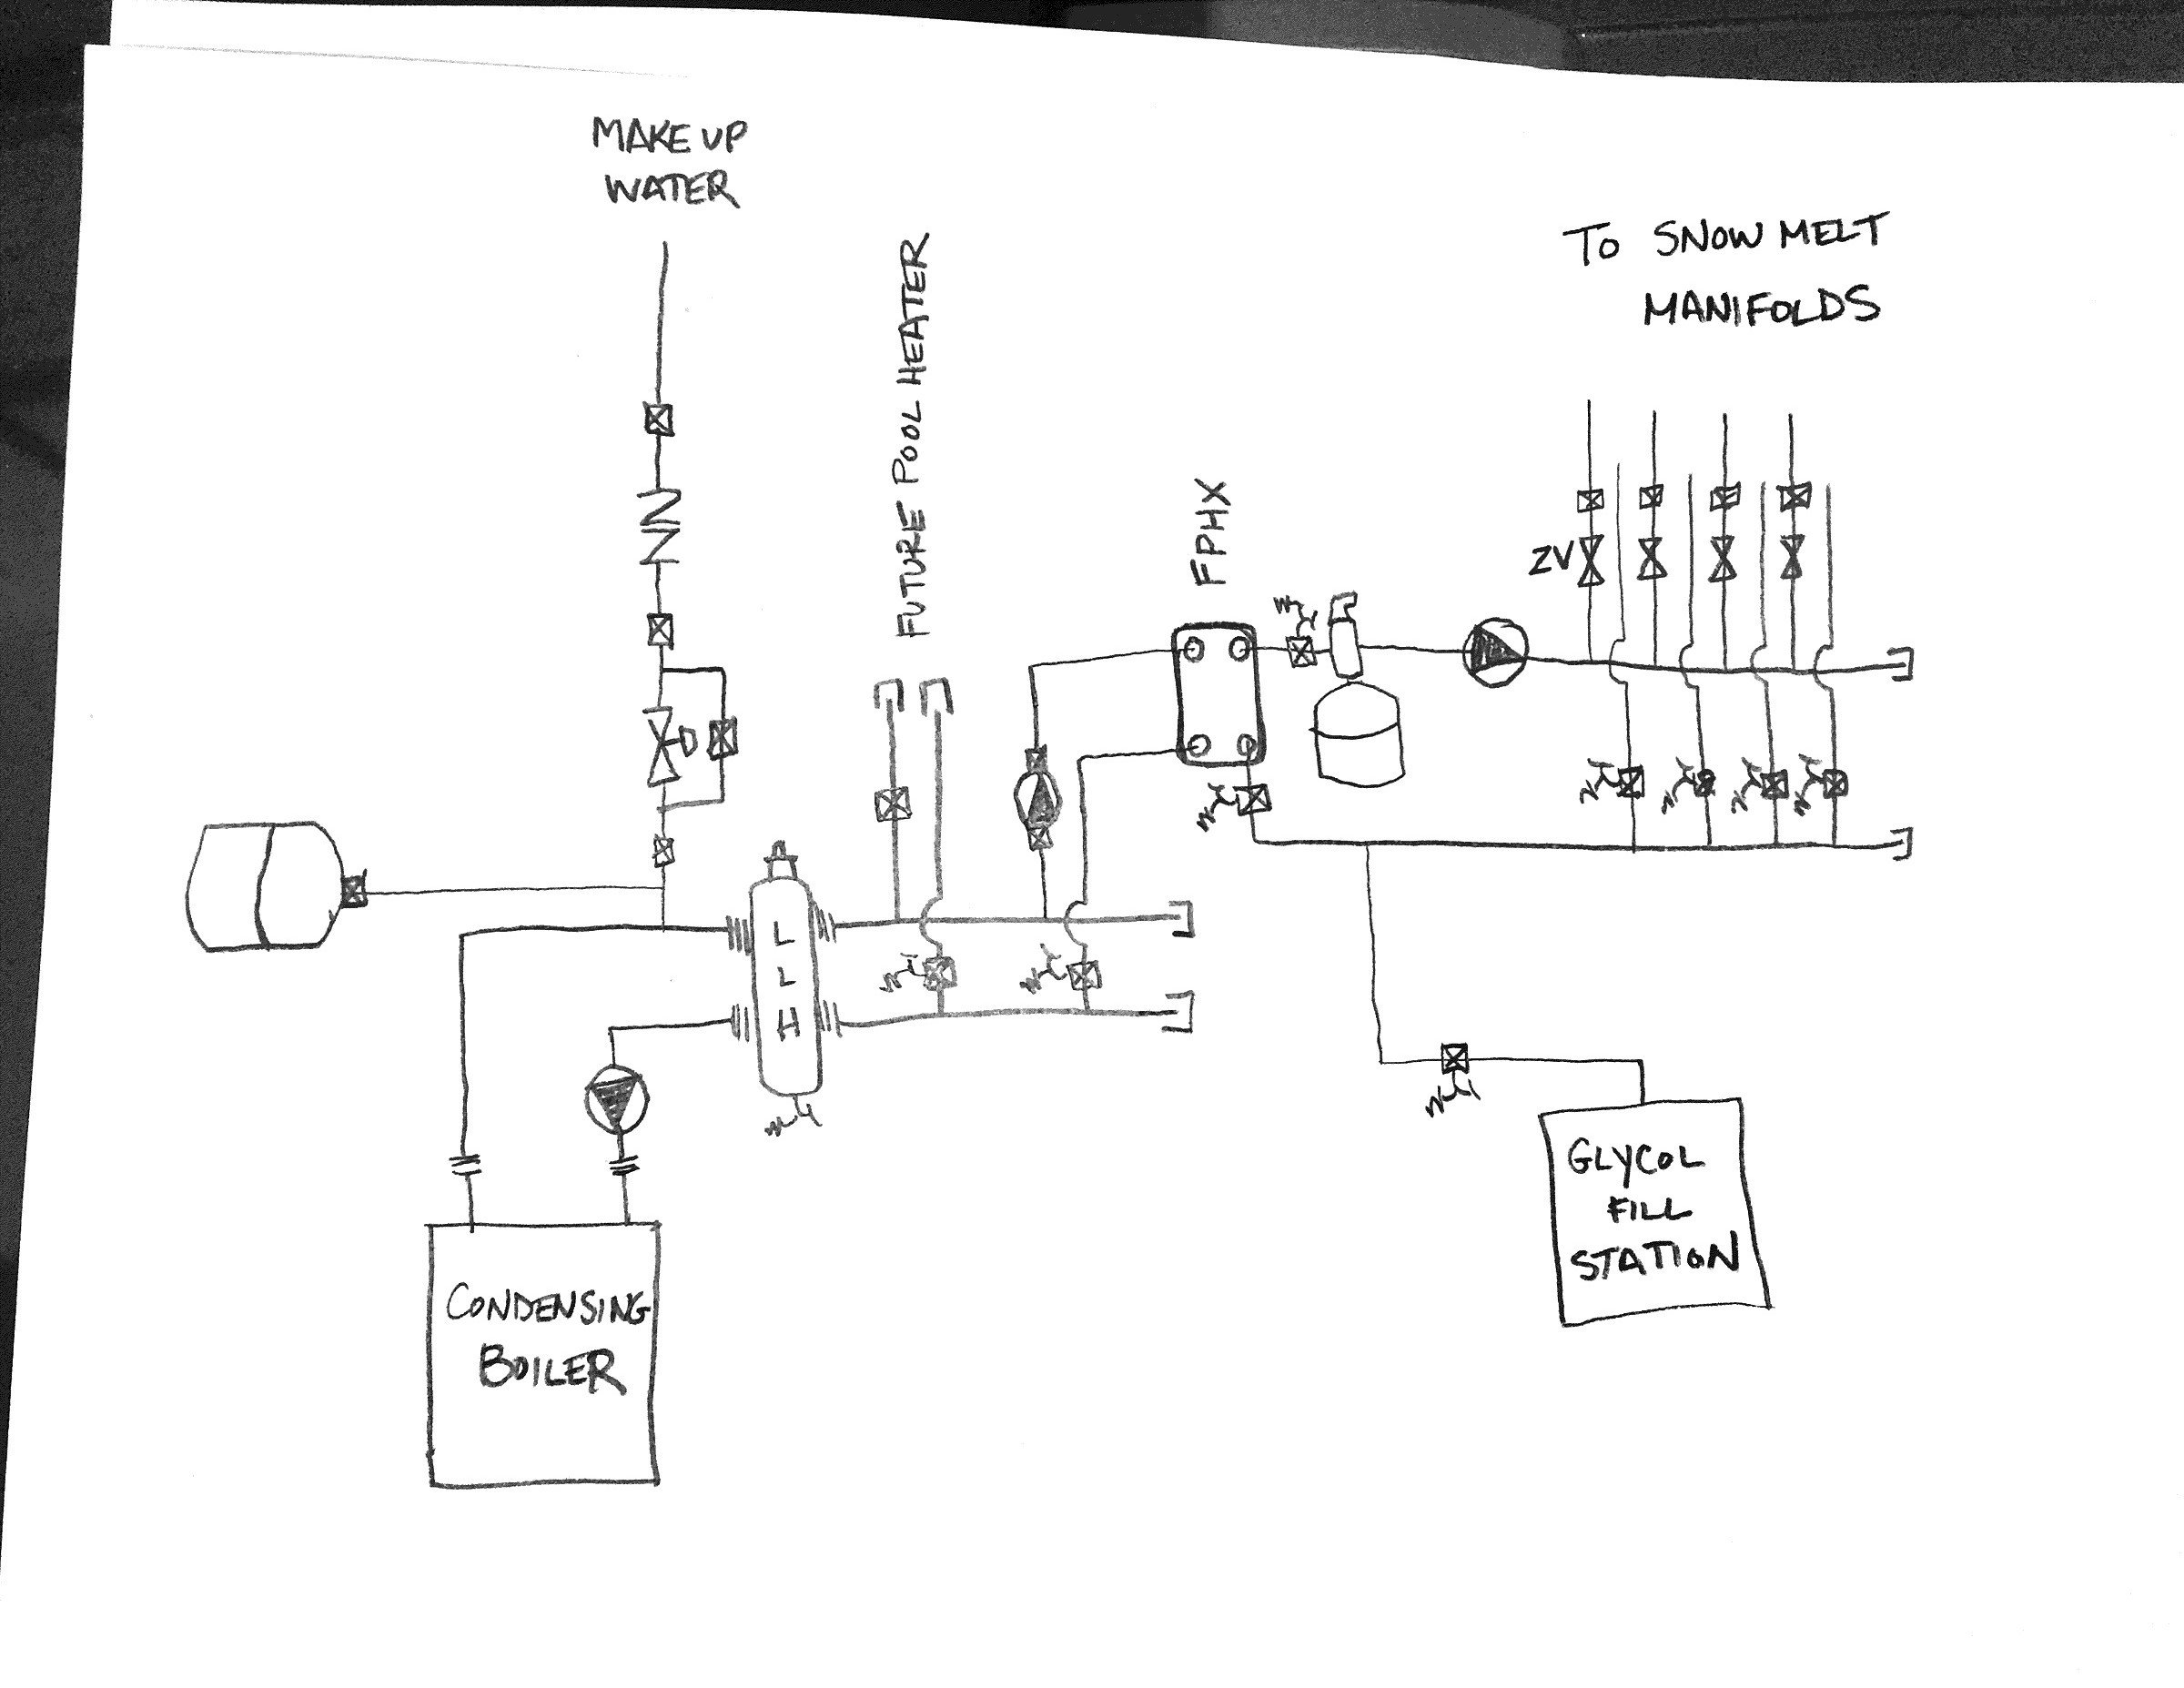 First Snowmelt Project Near Boiler Schematic Heating Help The Wall Schematics August 13 2015 At 1115am